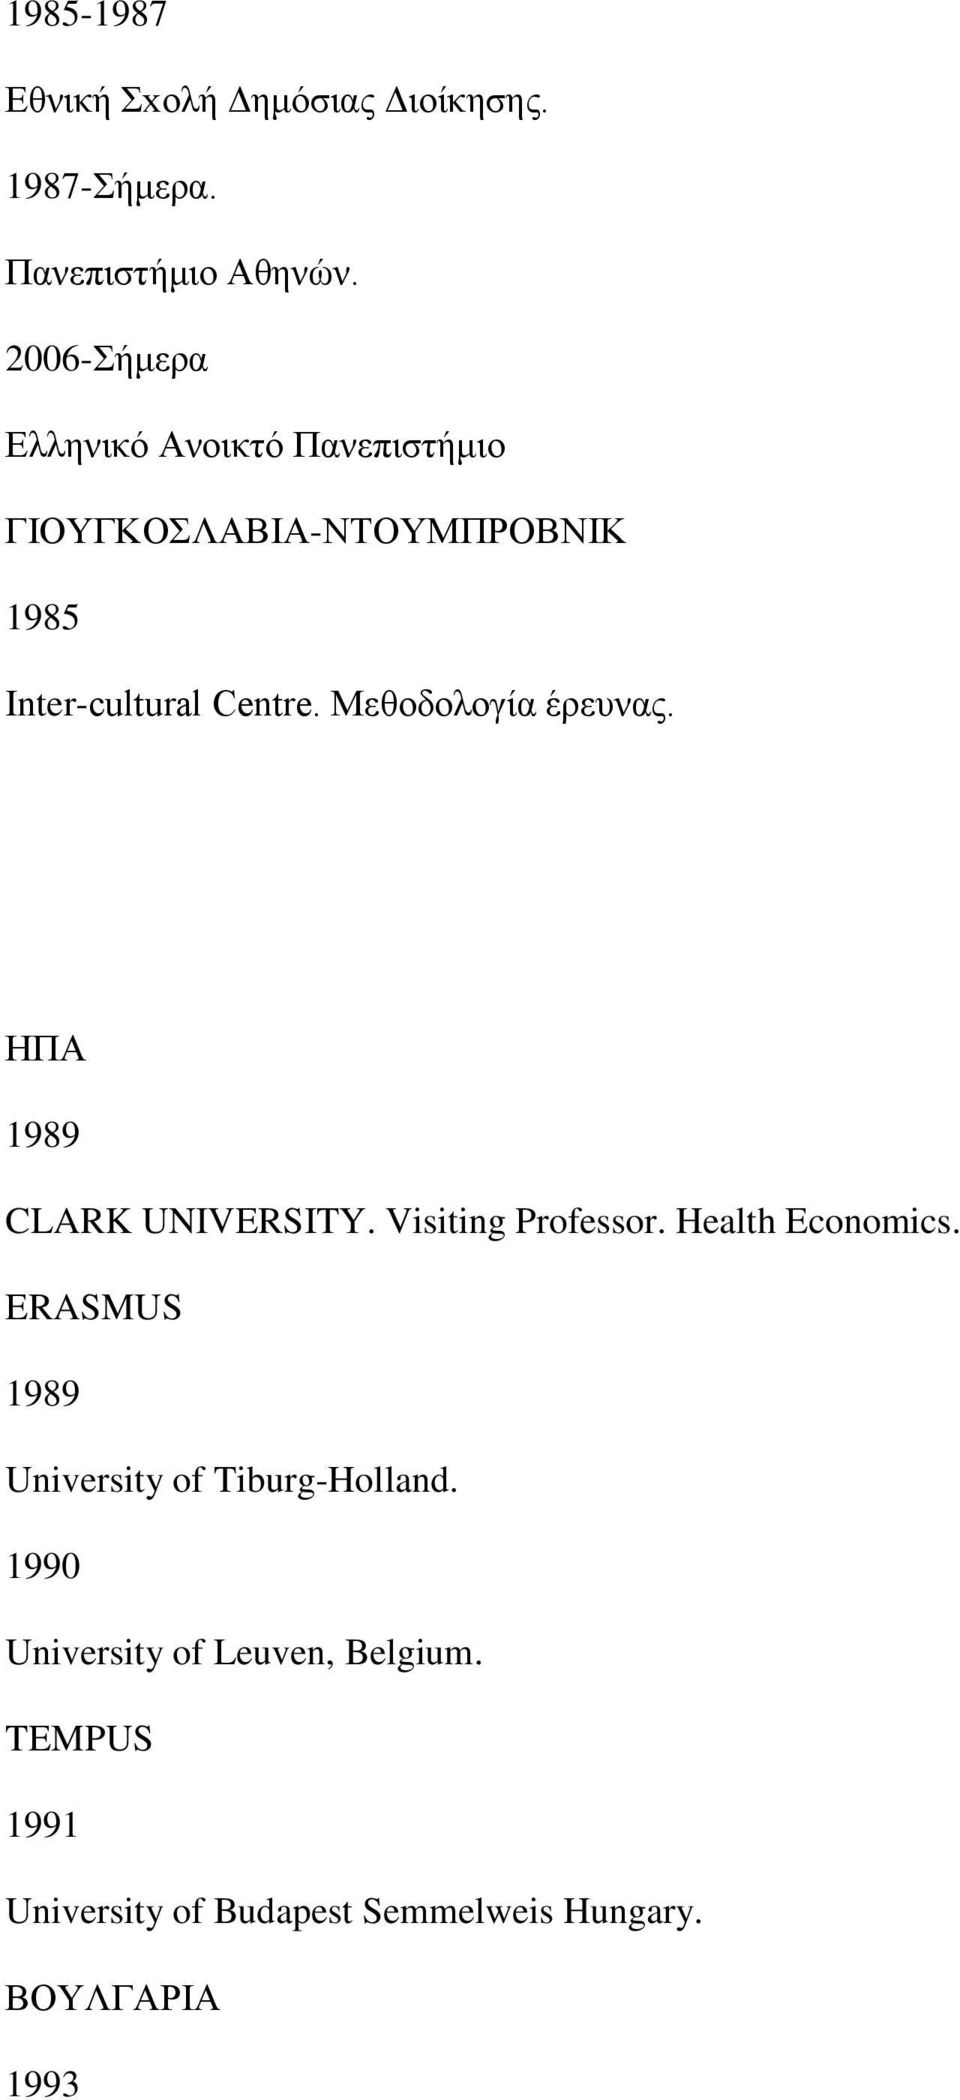 Mεζνδνινγία έξεπλαο. ΖΠΑ 1989 CLARK UNIVERSITY. Visiting Professor. Health Economics.